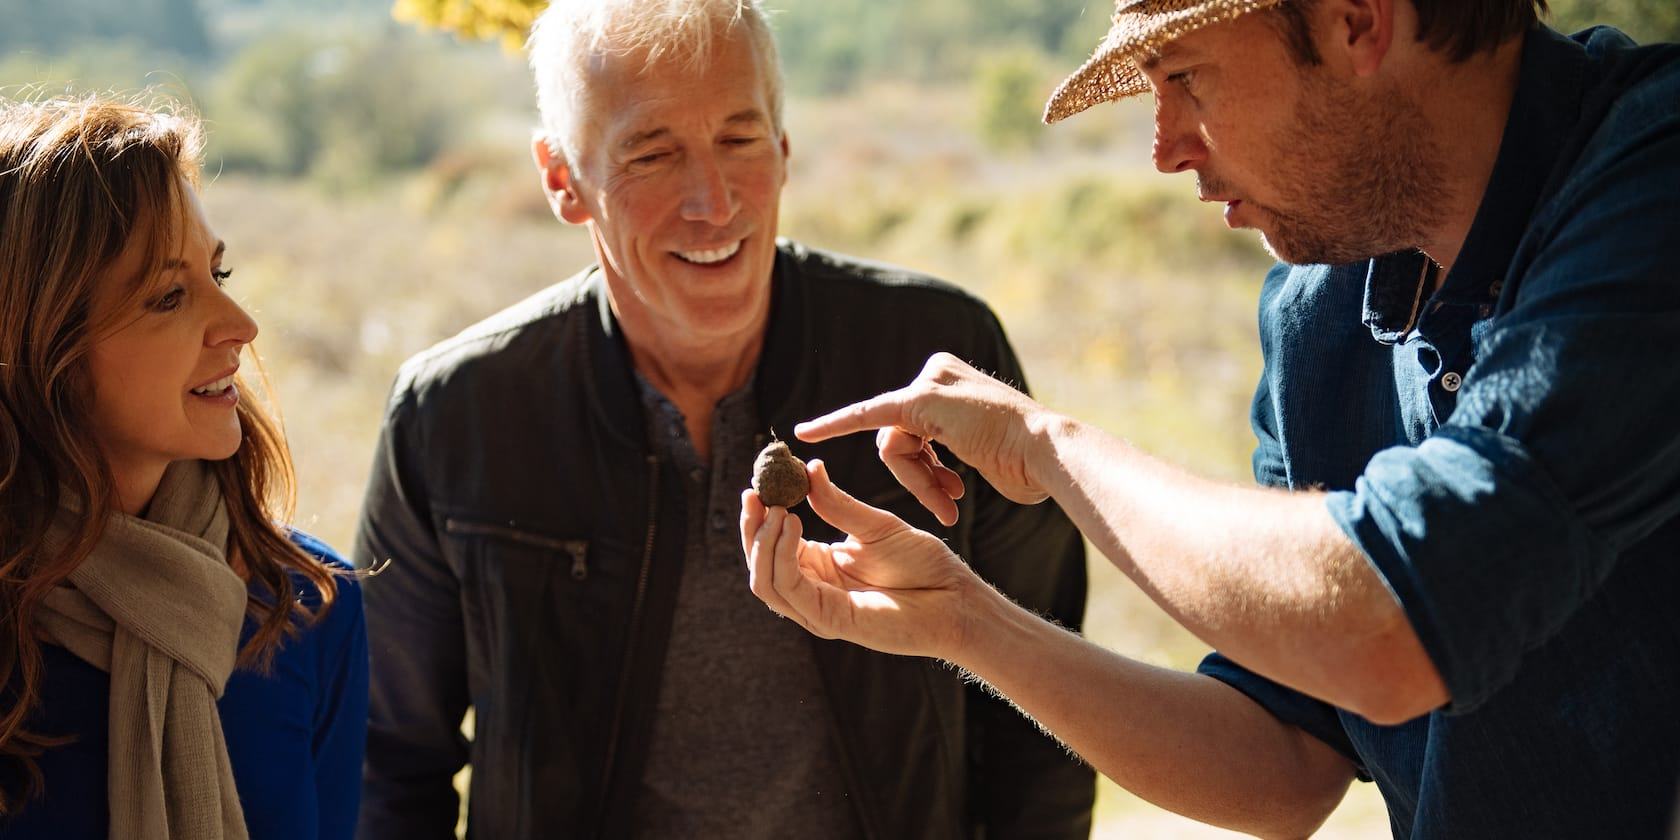 A man in a hat points out a truffle he is holding to a man and woman